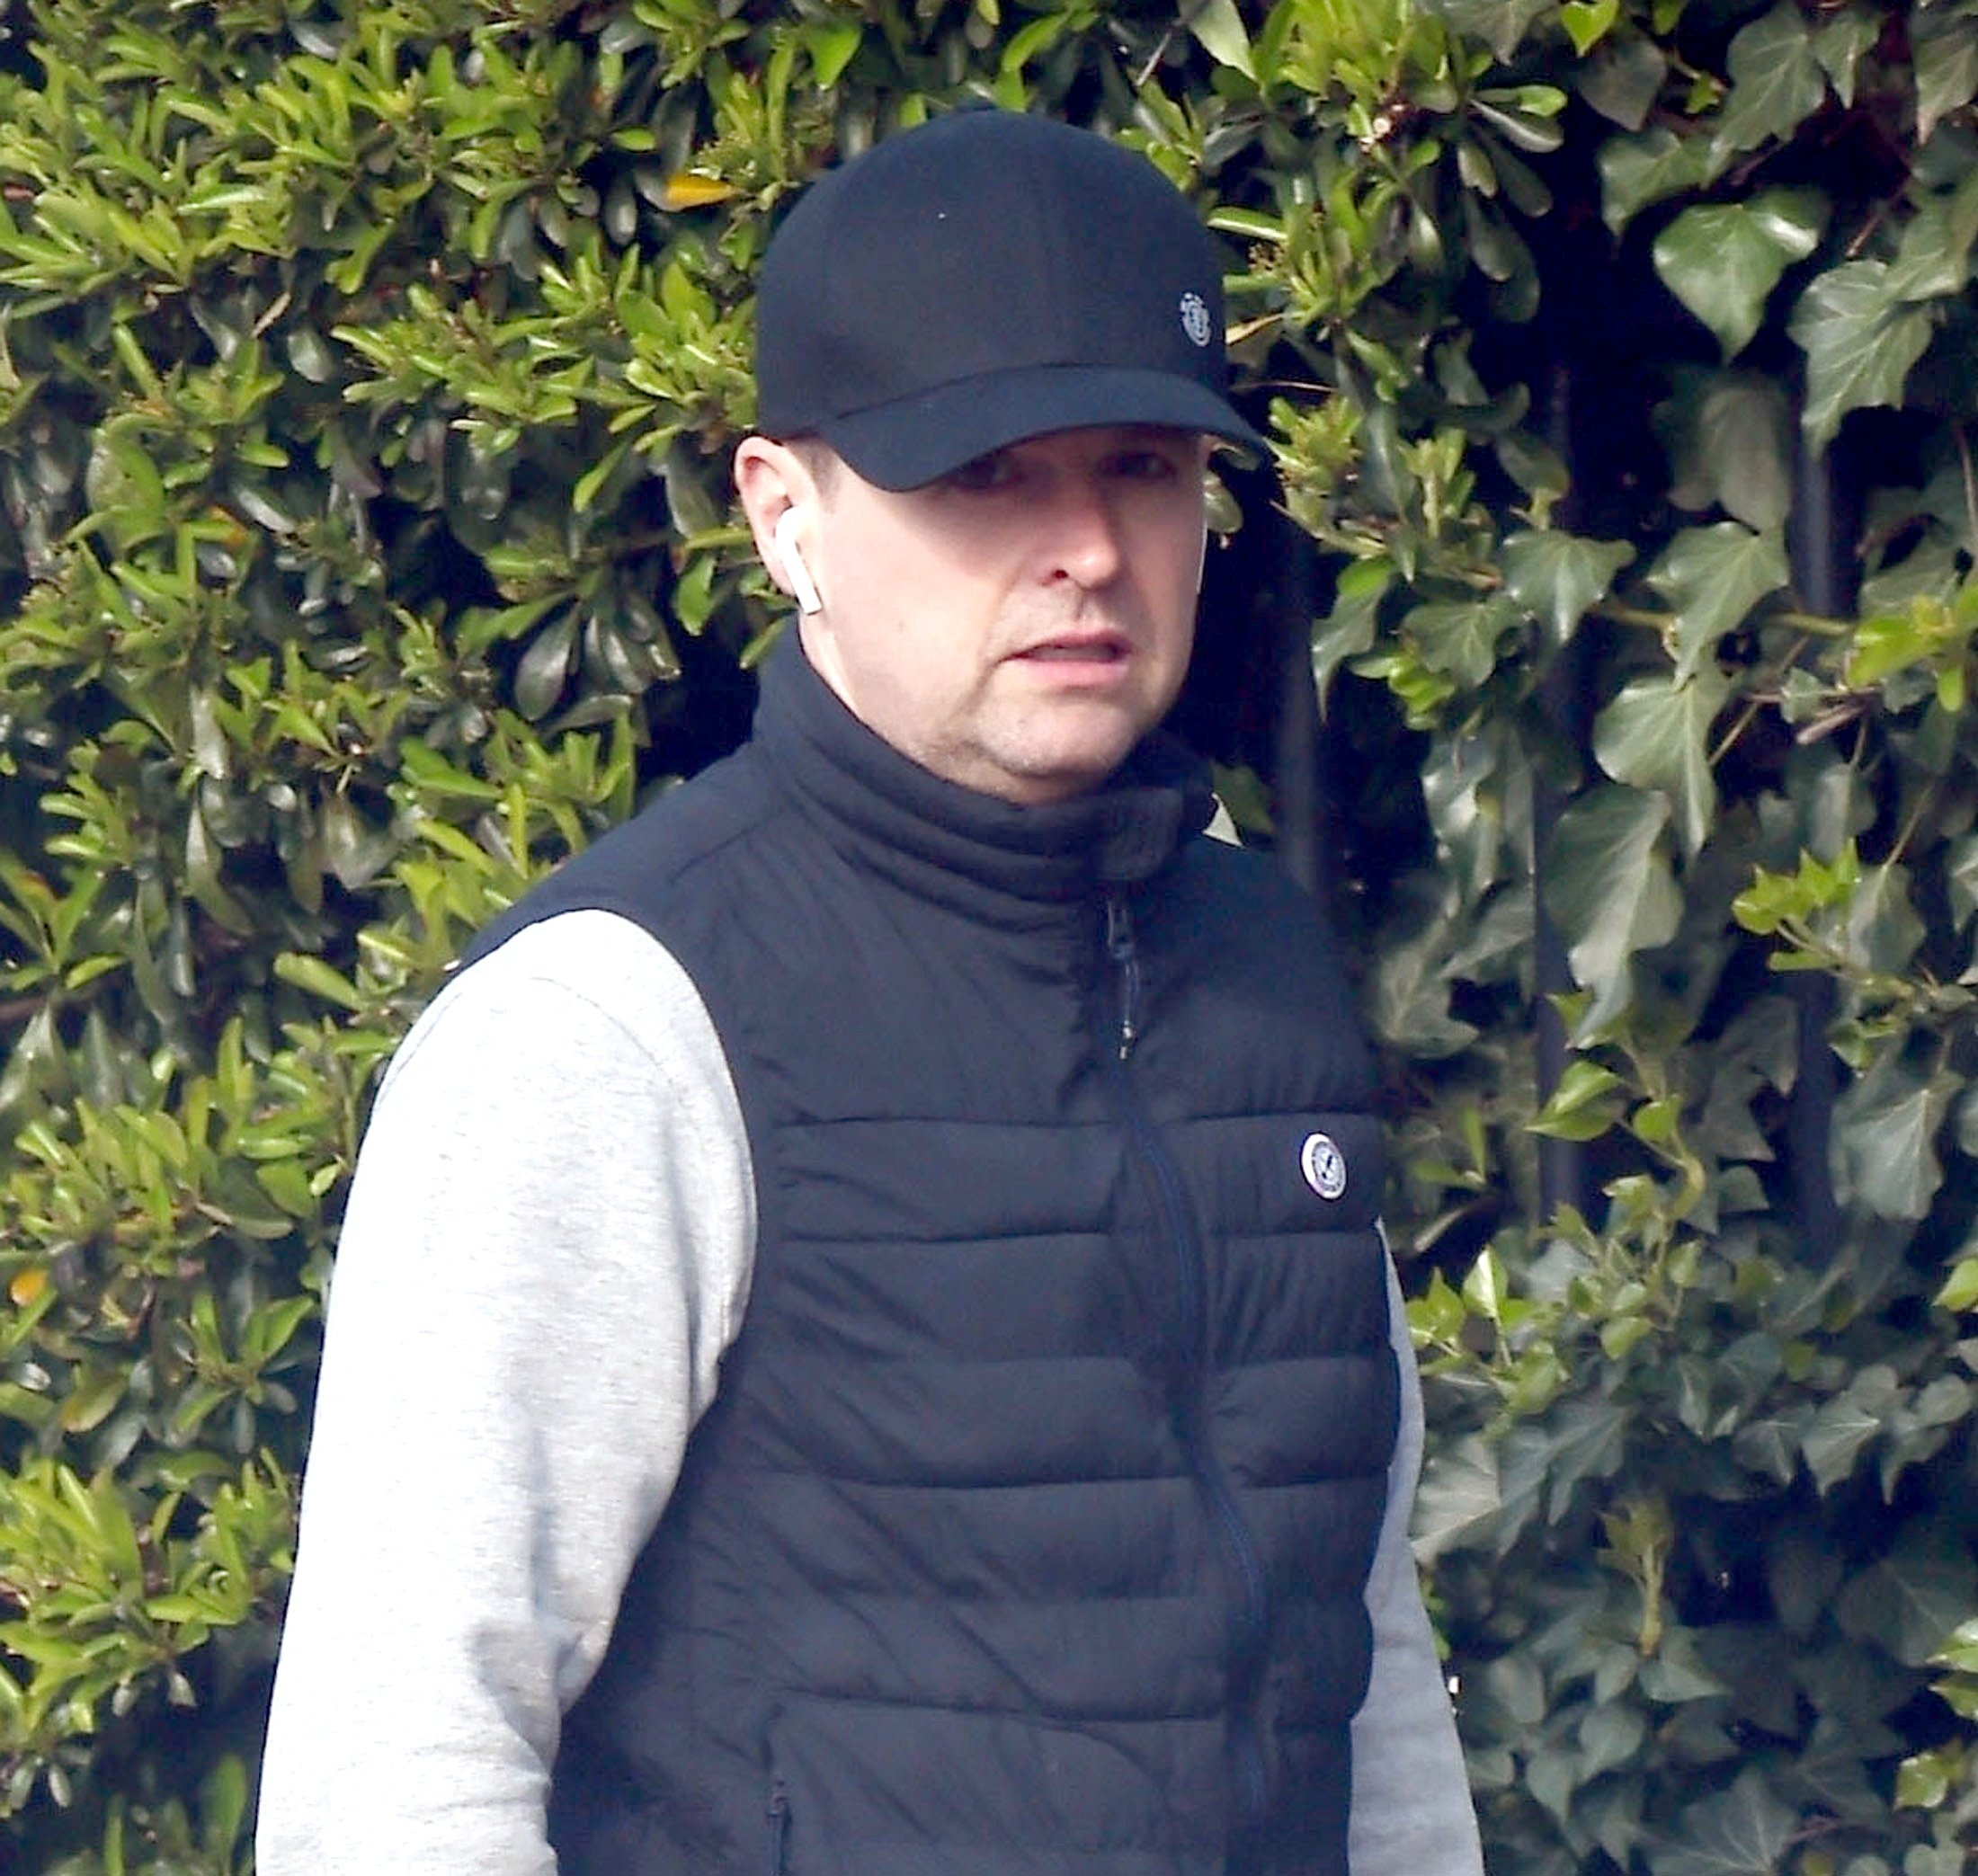 Declan Donnelly keeps head down on dog walk after revealing Ant McPartlin arrest 'destabilised' him